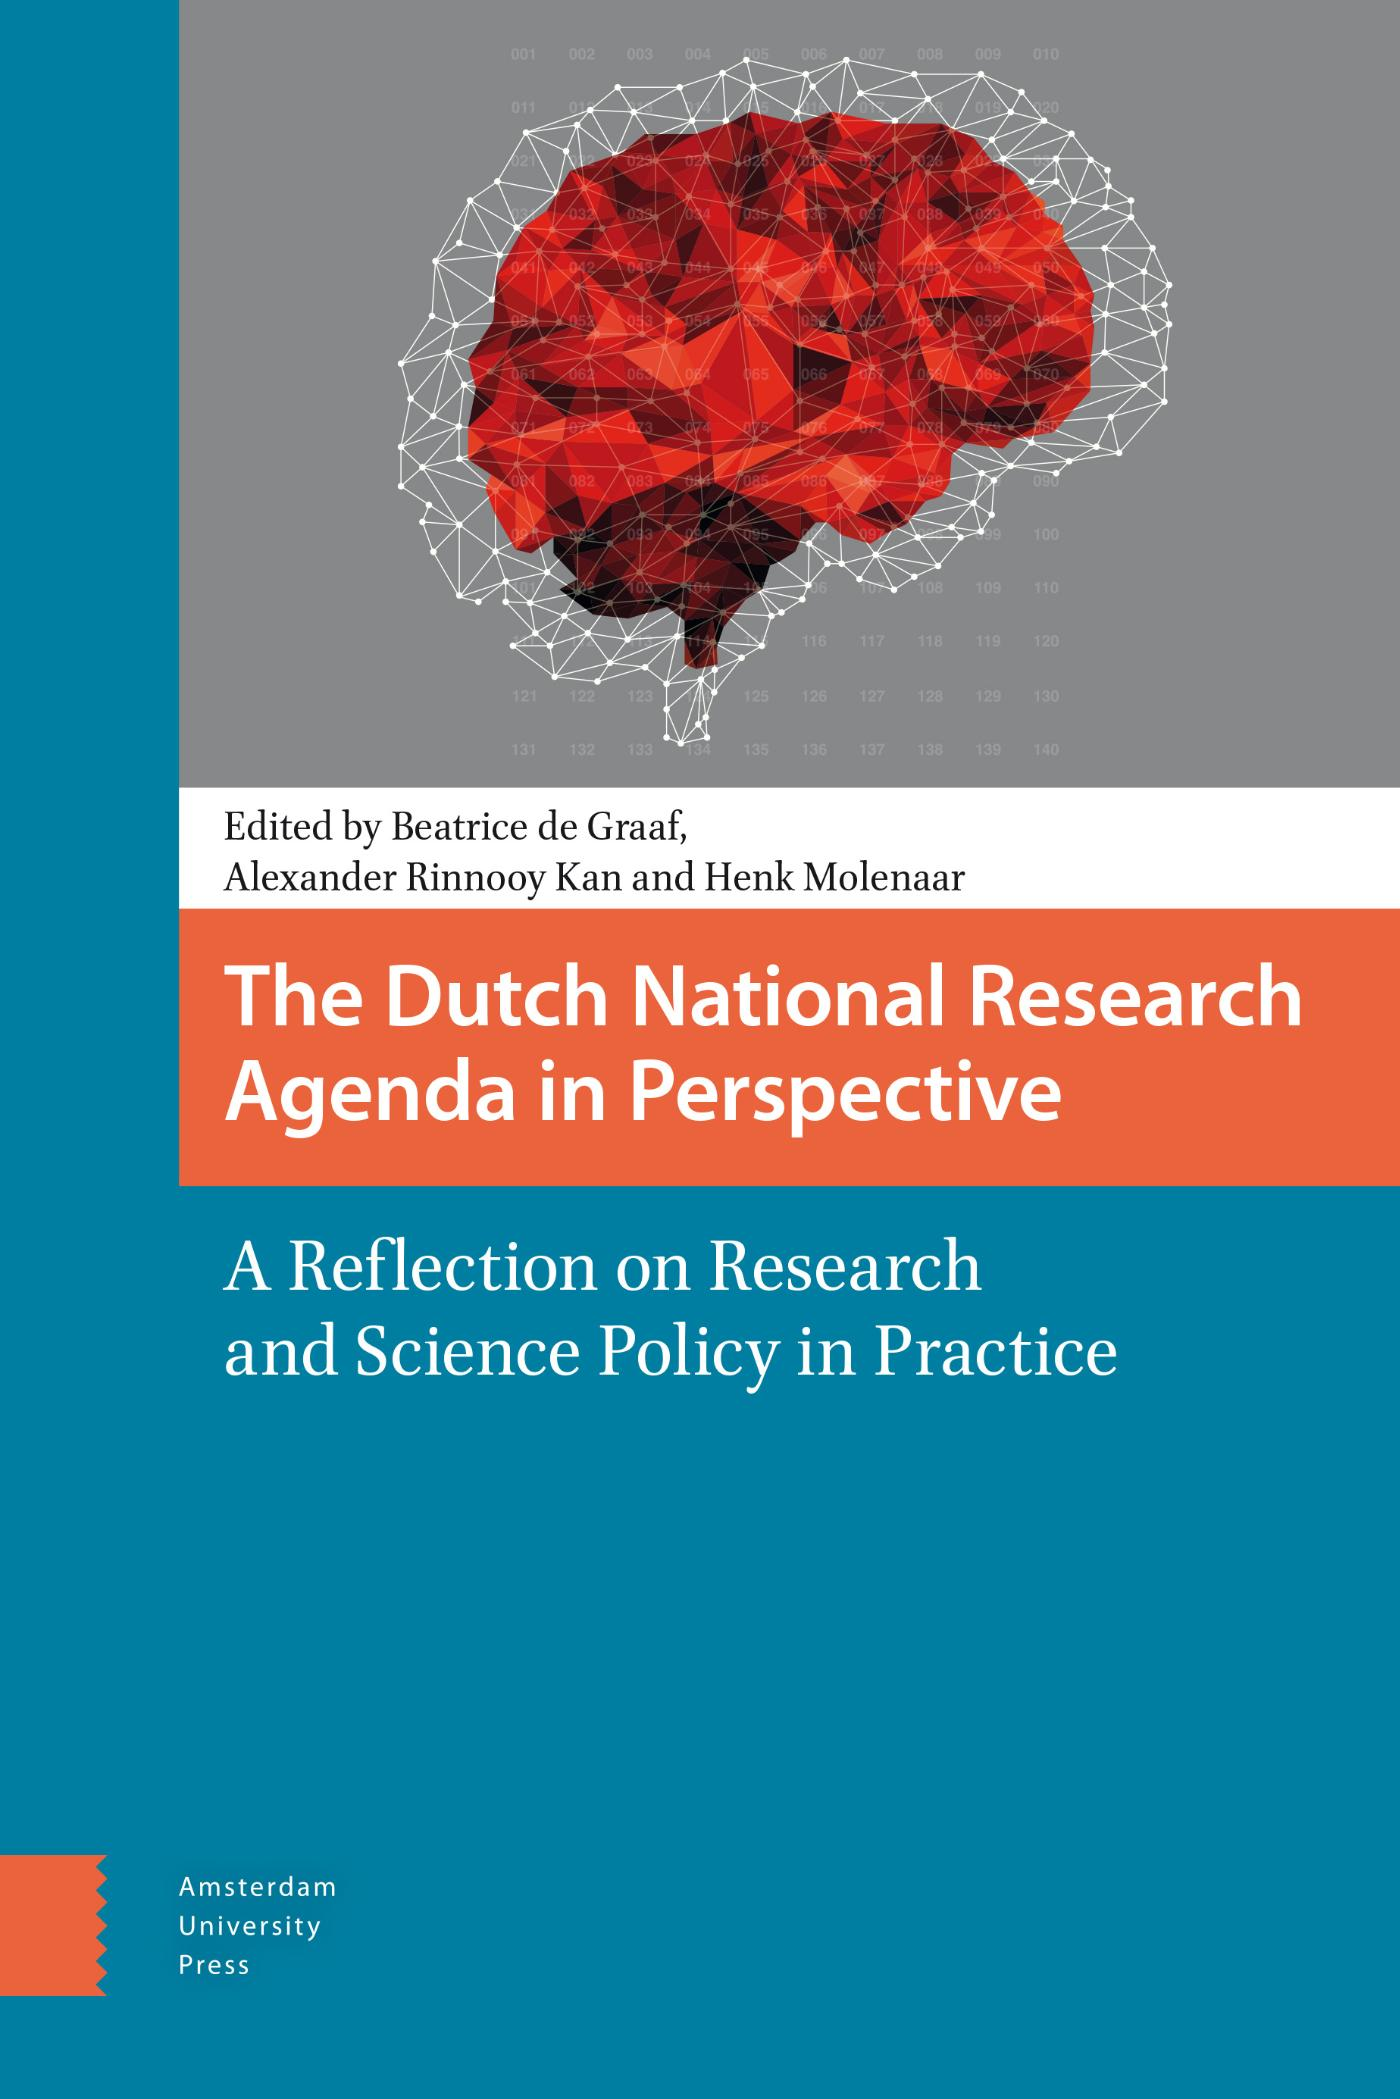 The Dutch National Research agenda in perspective